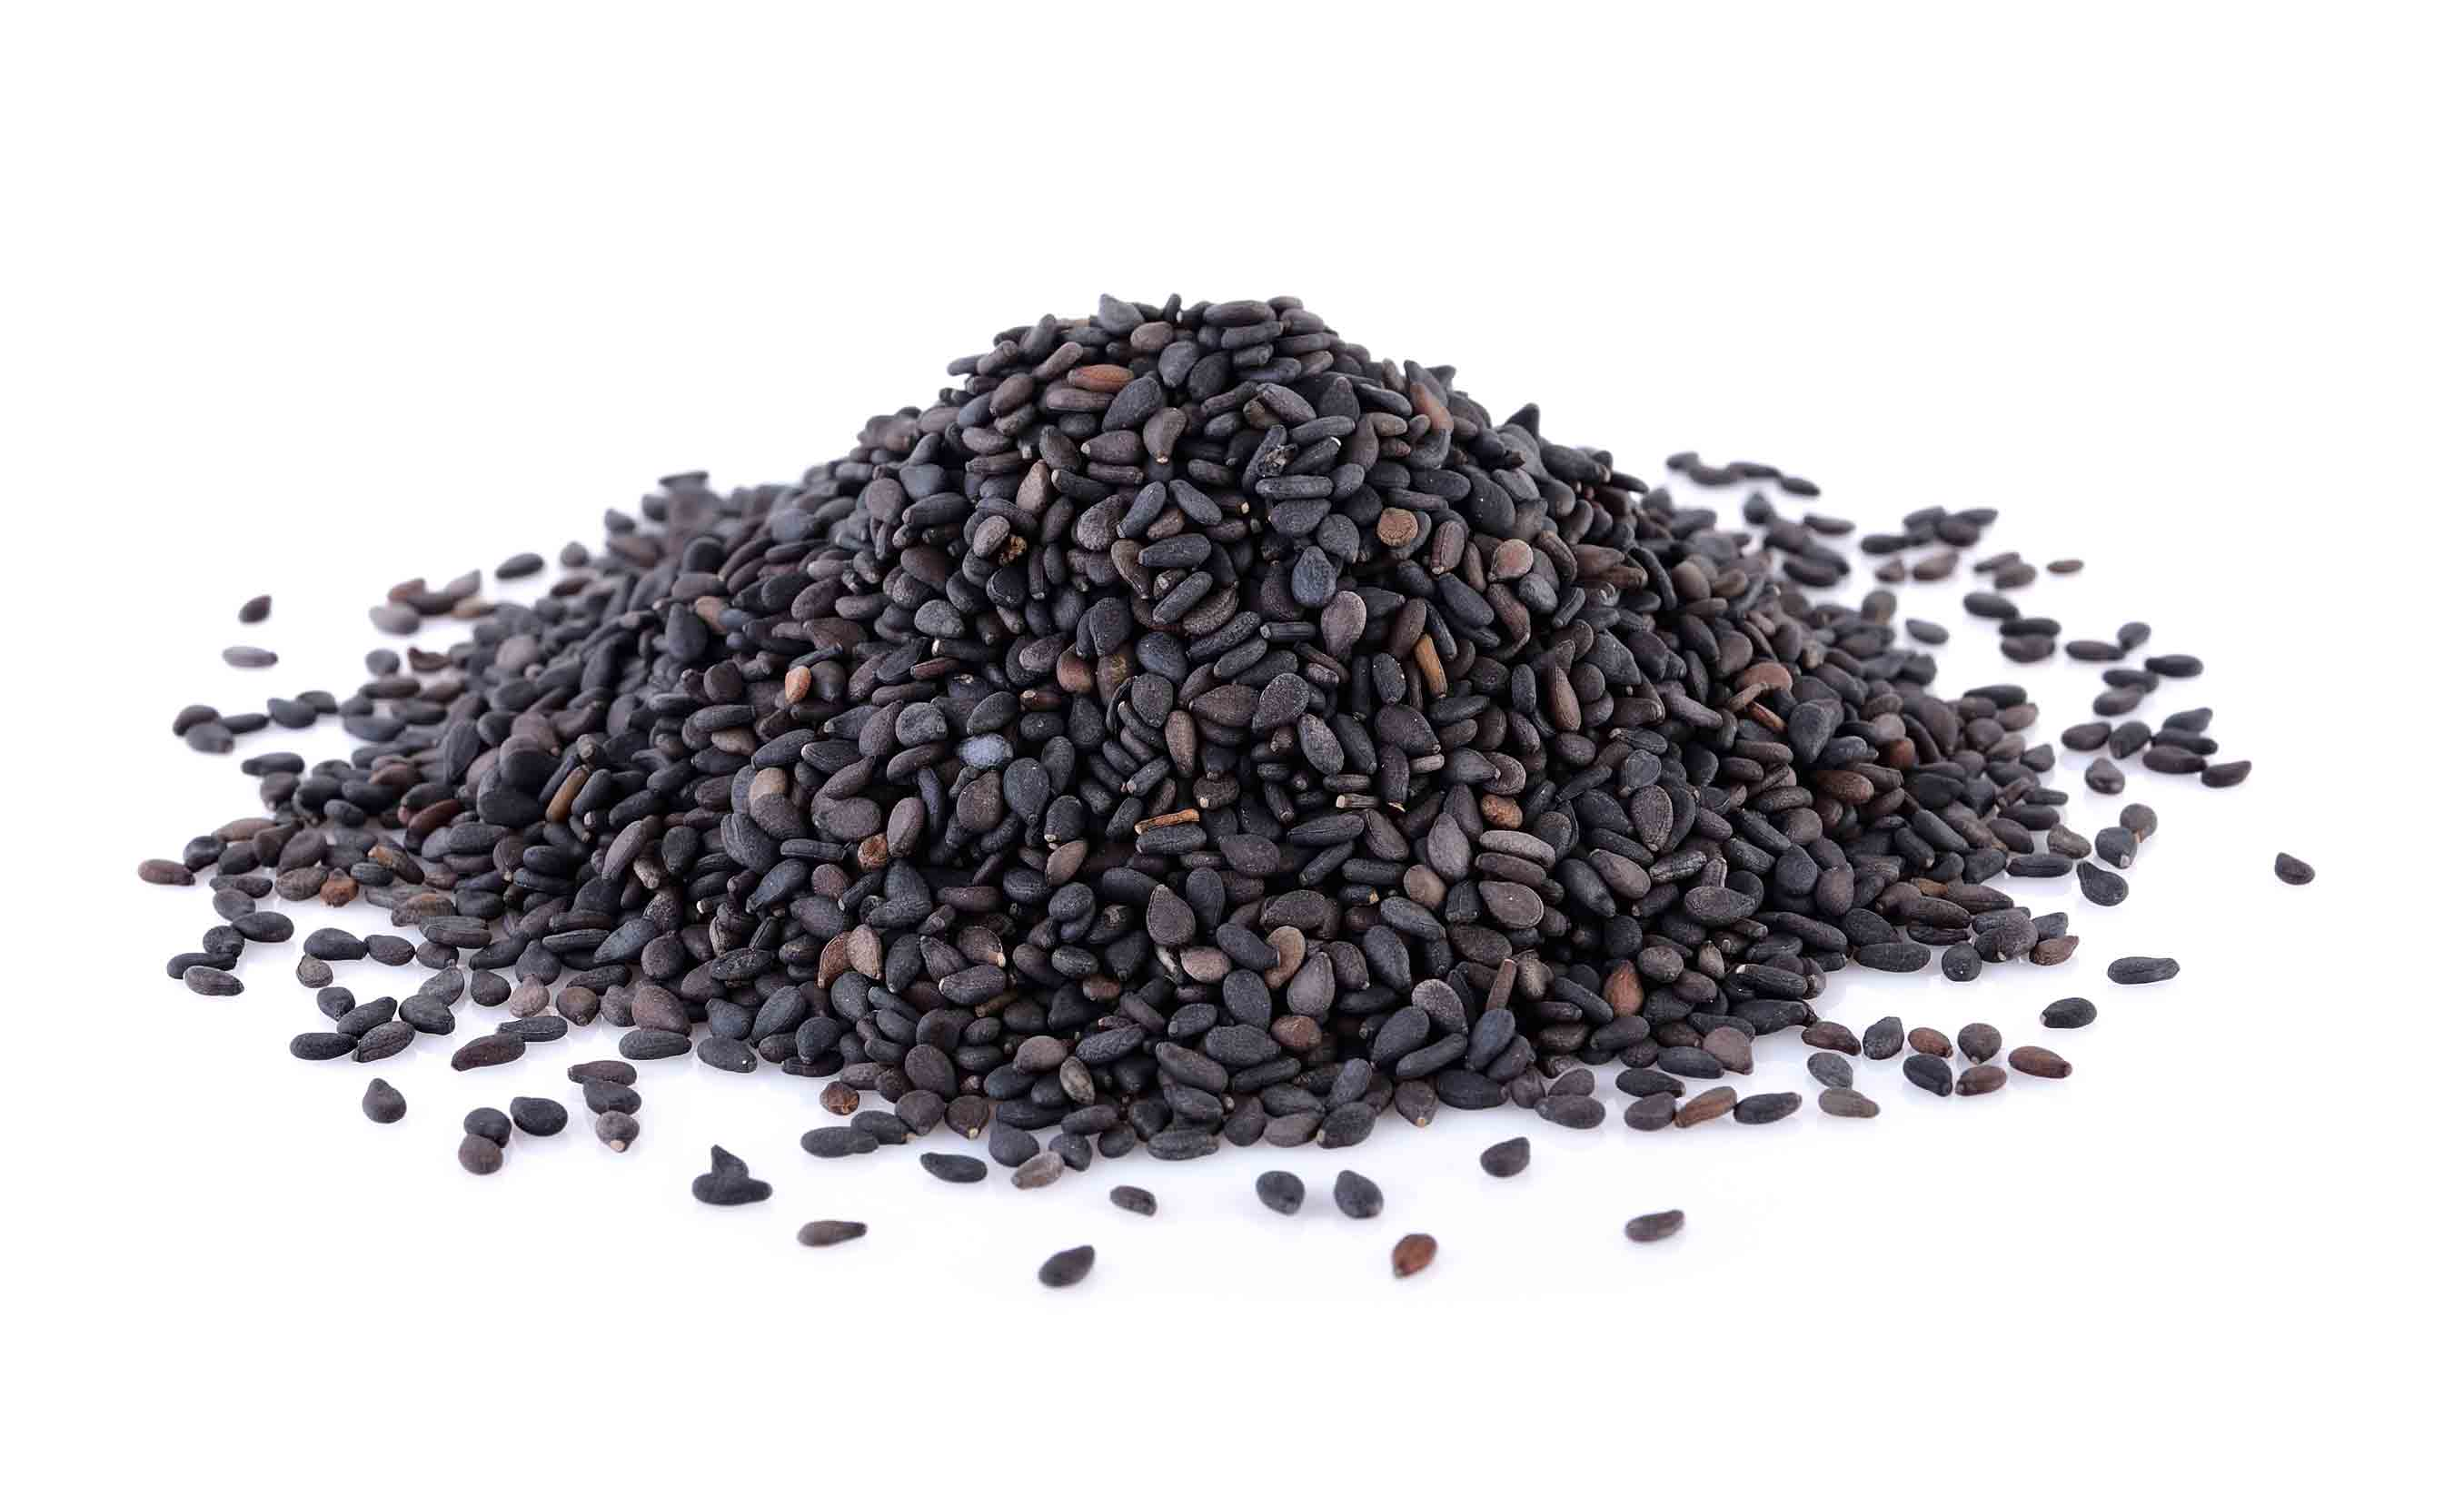 A pile of black sesame seeds used as a nigella seed substitute